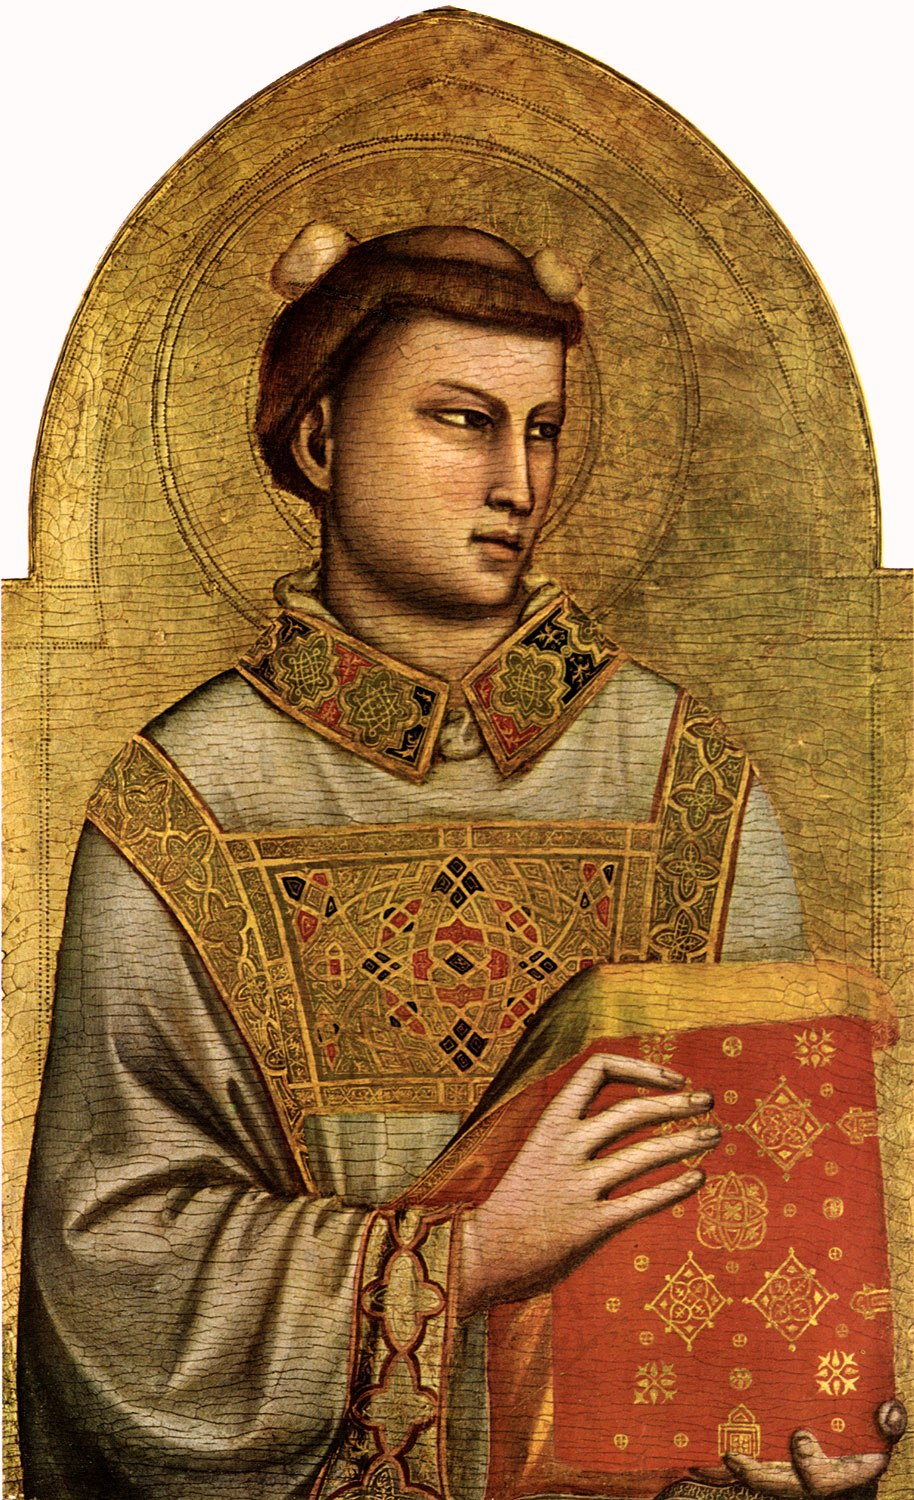 Giotto._saint-stephen-1320-25_Florence,_Museo_Horne.jpg